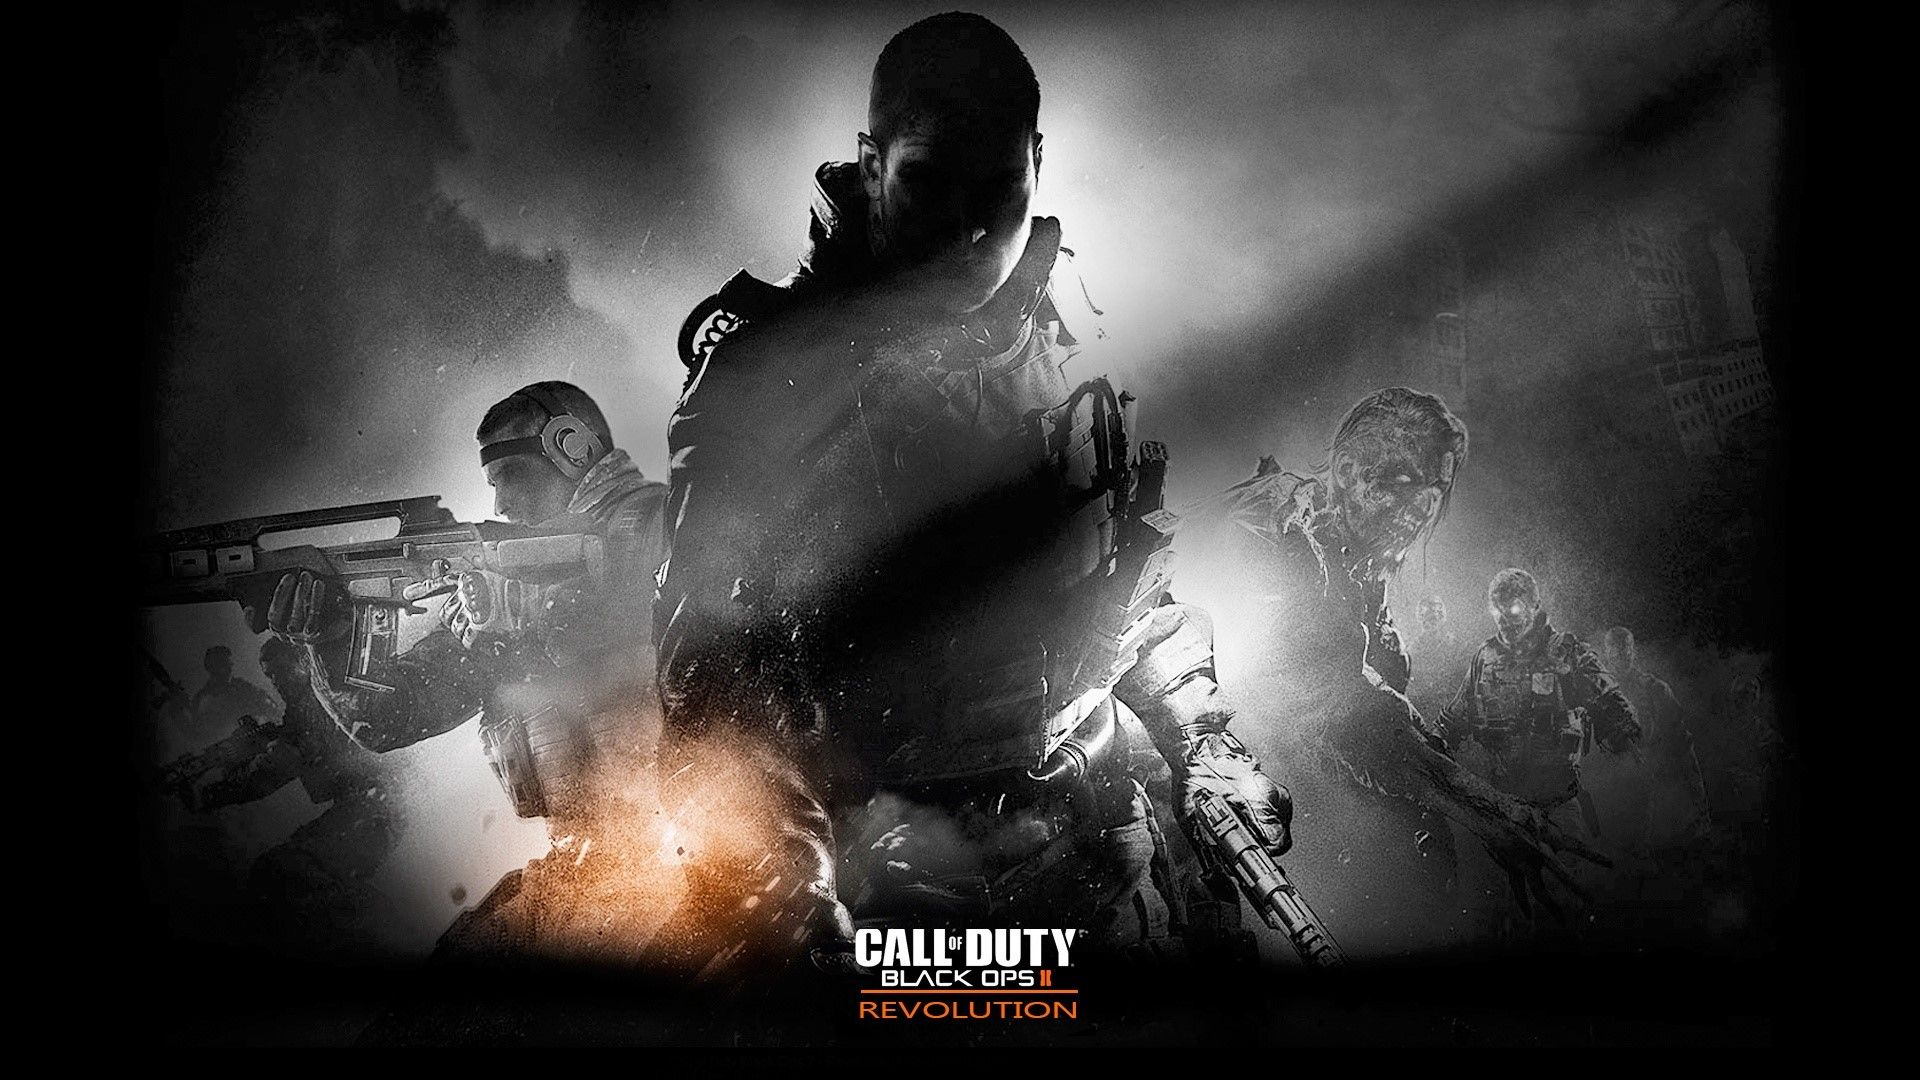 Call Of Duty Black Ops 2 Hd Wallpaper Call Of Duty Black Call Of Duty Ios Wallpapers